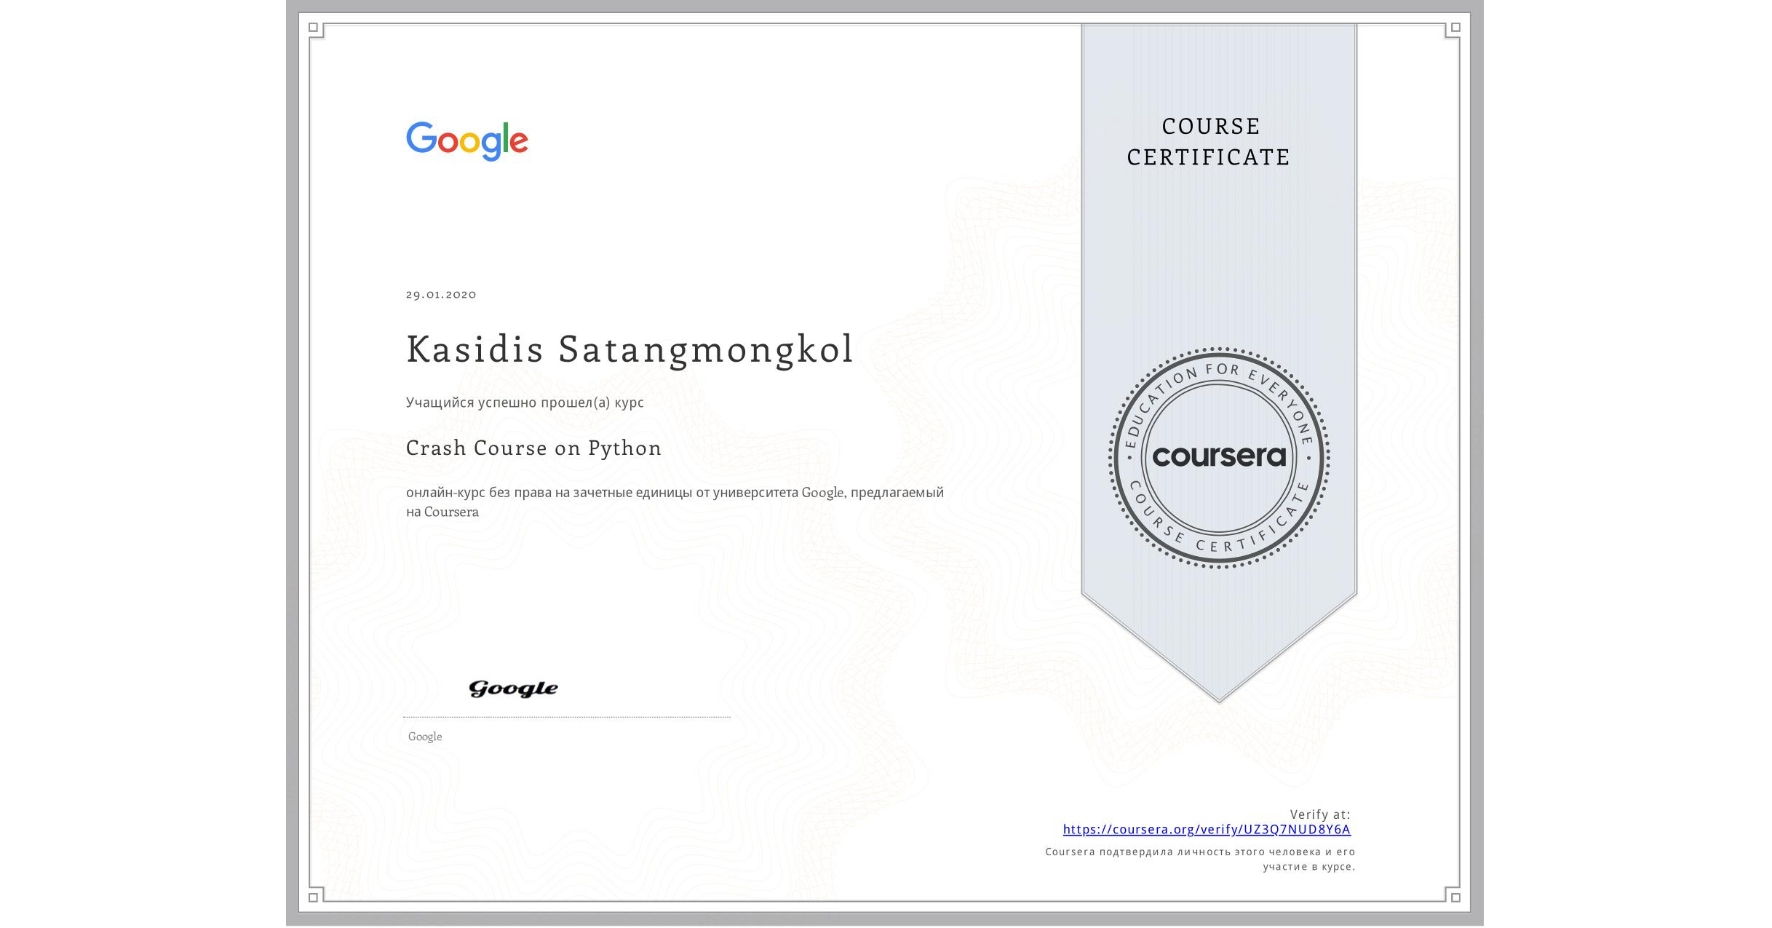 View certificate for Kasidis Satangmongkol, Crash Course on Python, an online non-credit course authorized by Google and offered through Coursera